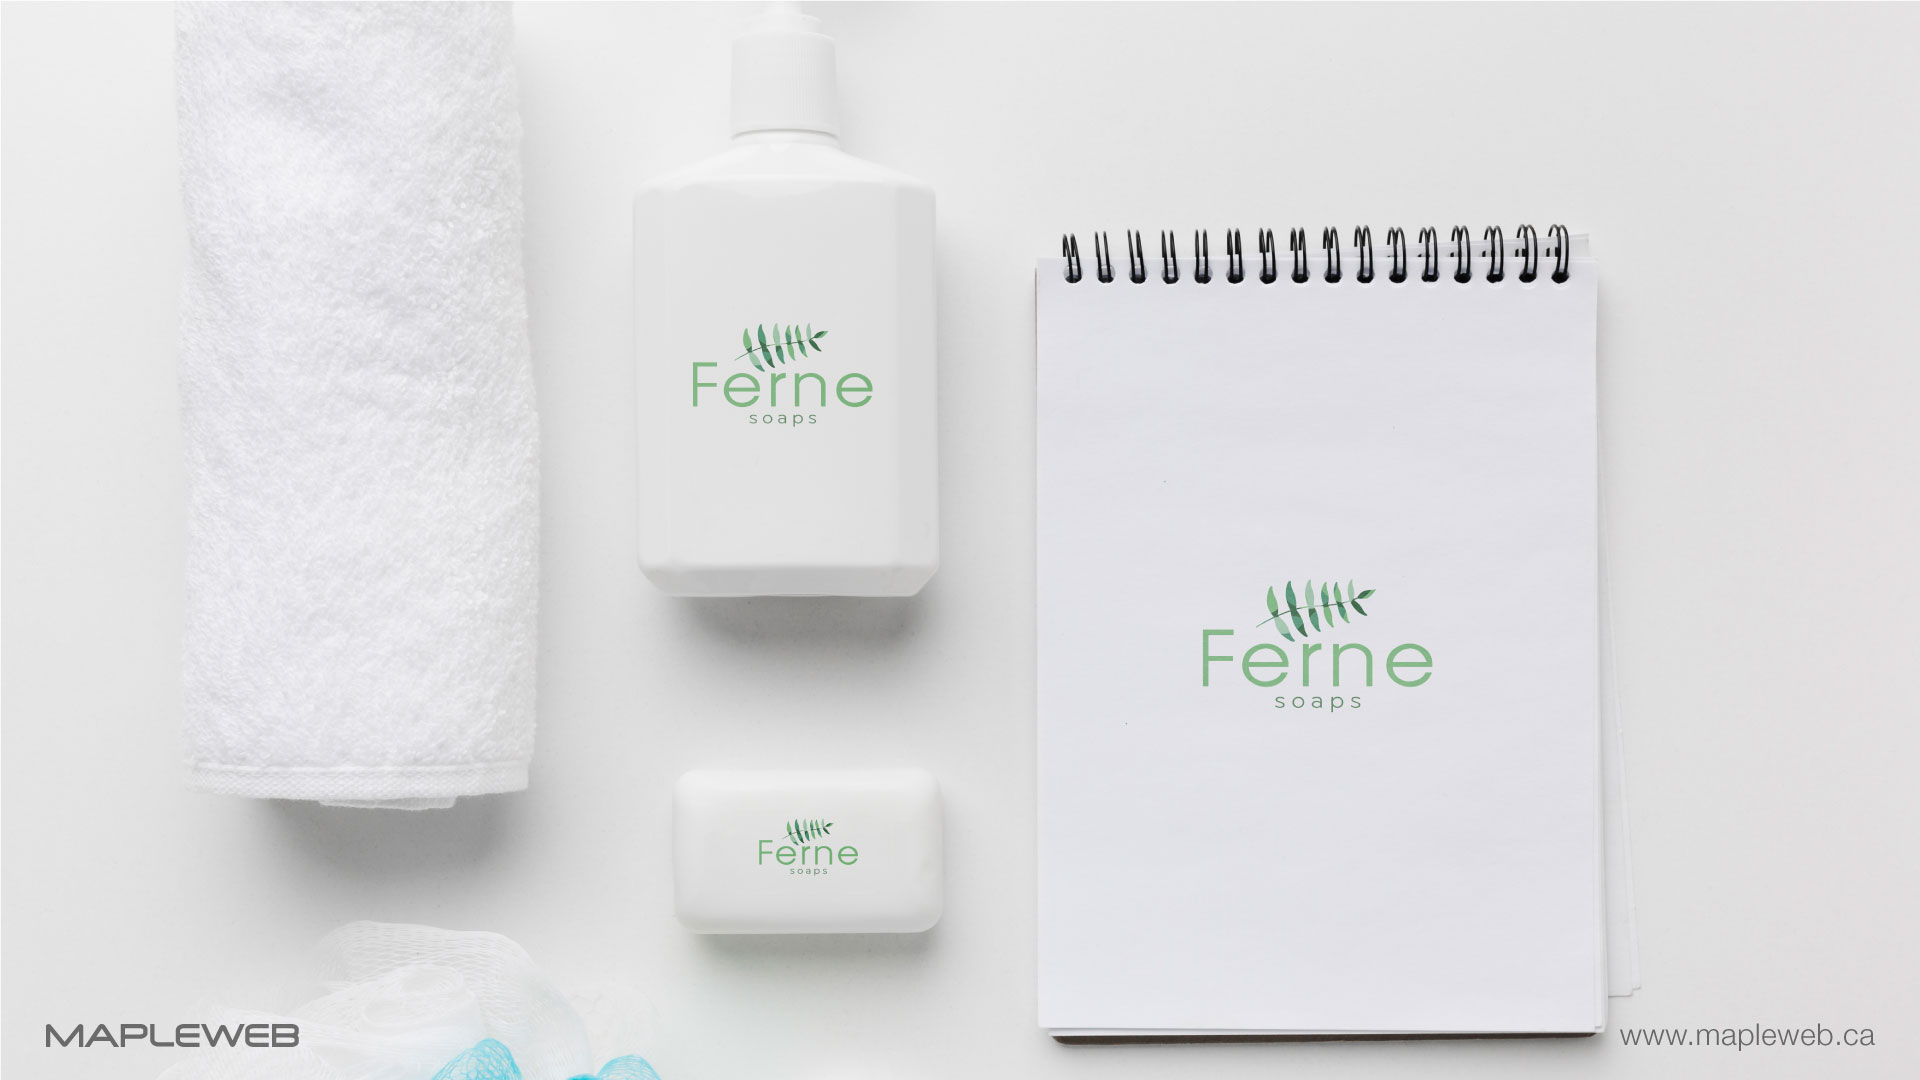 ferne-soap-brand-logo-design-by-mapleweb-vancouver-canada-soap-package-mock